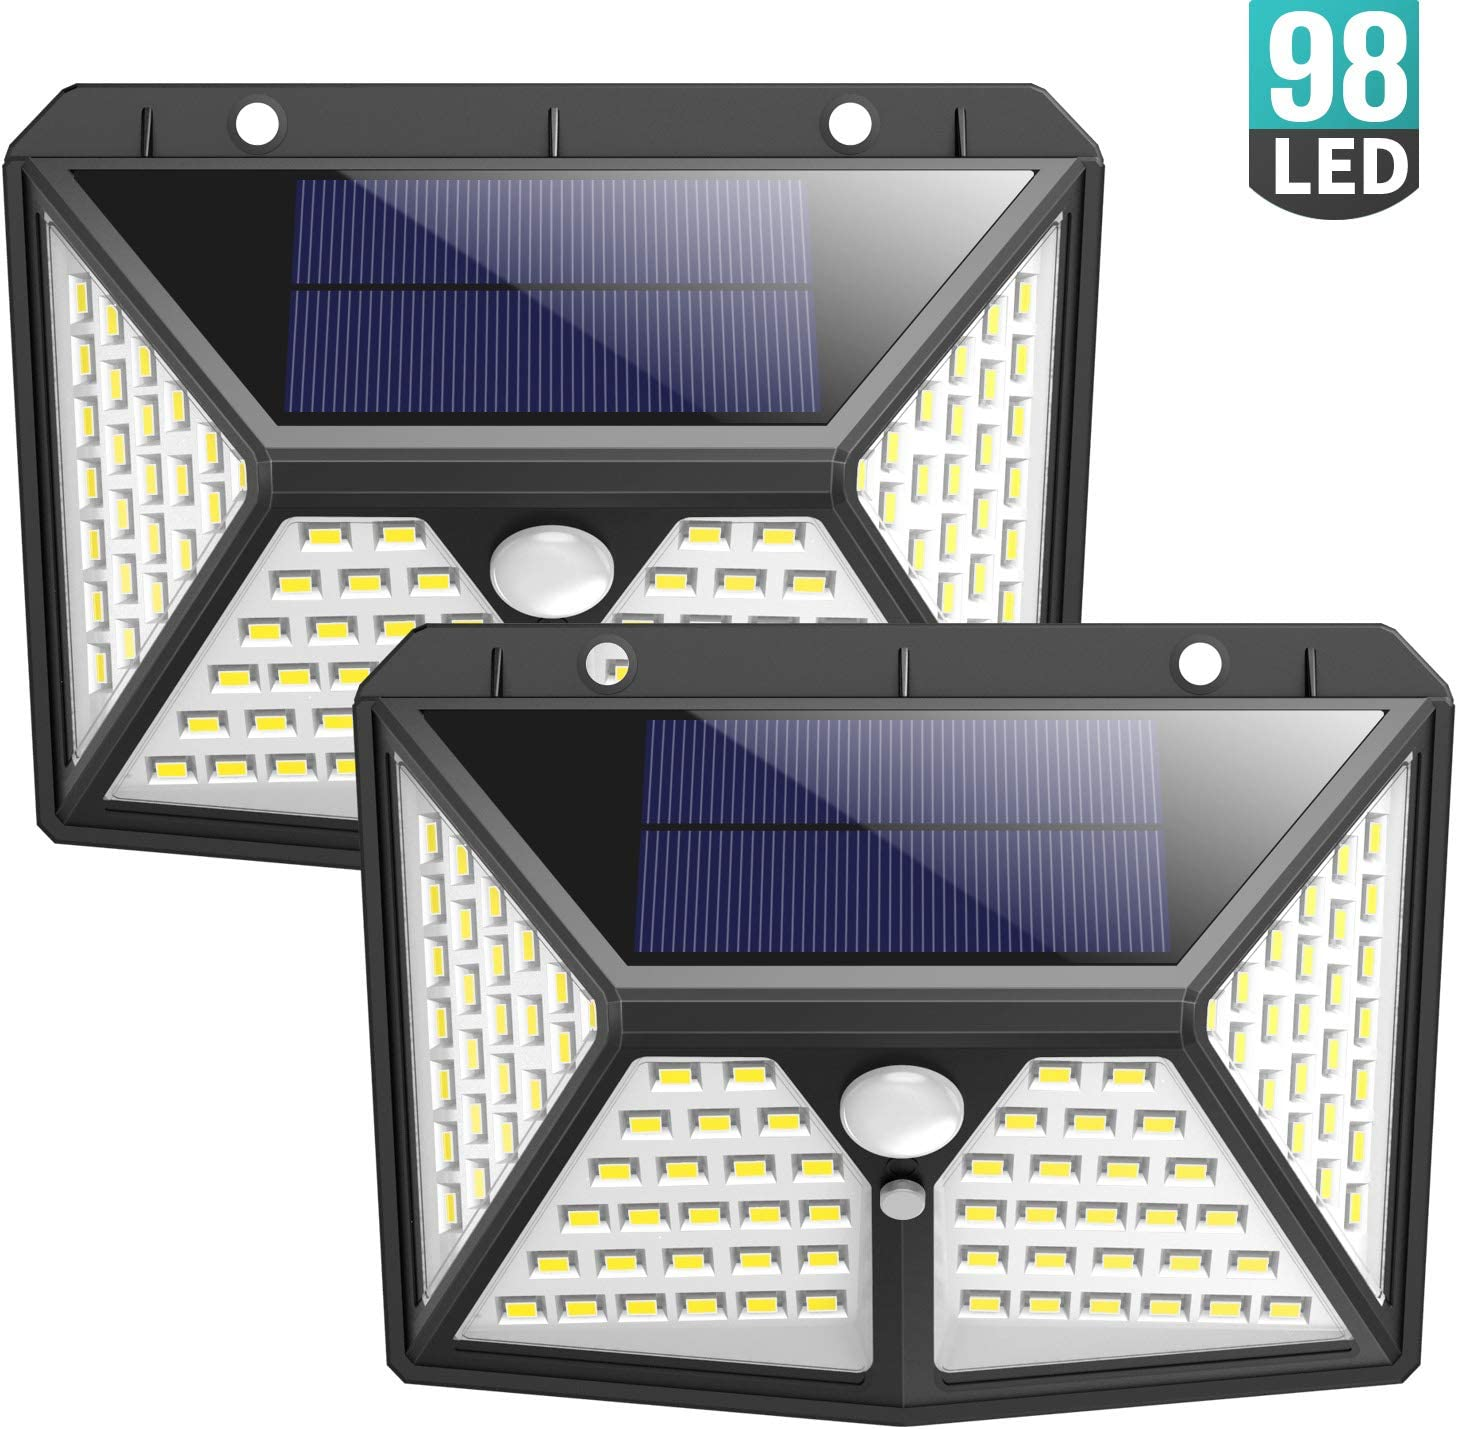 Solar Lights Outdoor 98 LED, Gixvdcu Solar Motion Sensor Lights 3 Modes 270 Wide Angle IP65 Waterproof Security Wireless Wall Light for Outdoor, Garden, Patio Yard, Deck Garage, Fence 2 Pack